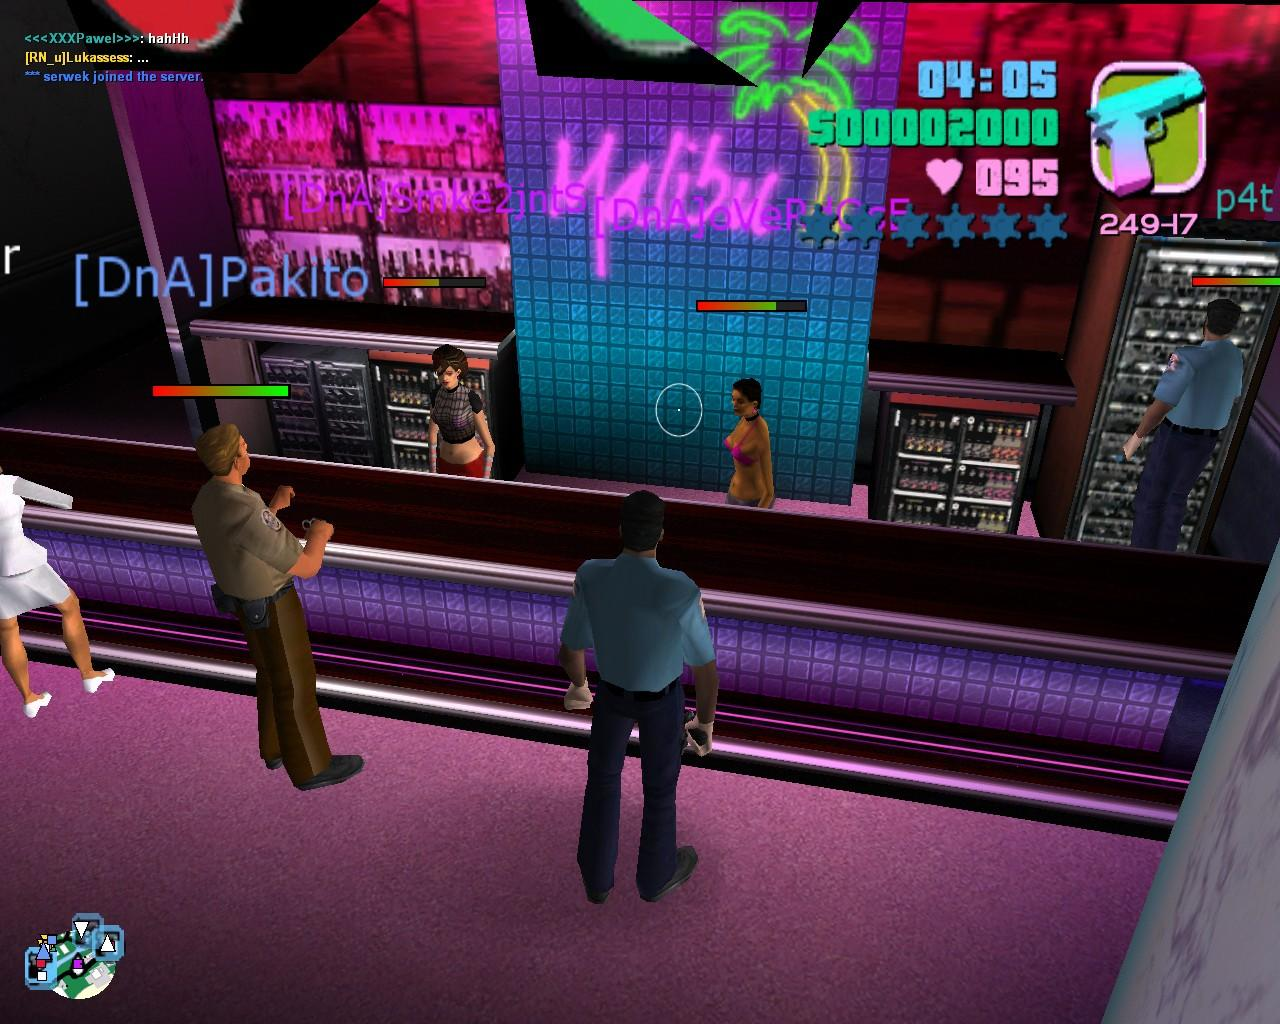 Vice city naked pc game pron pics